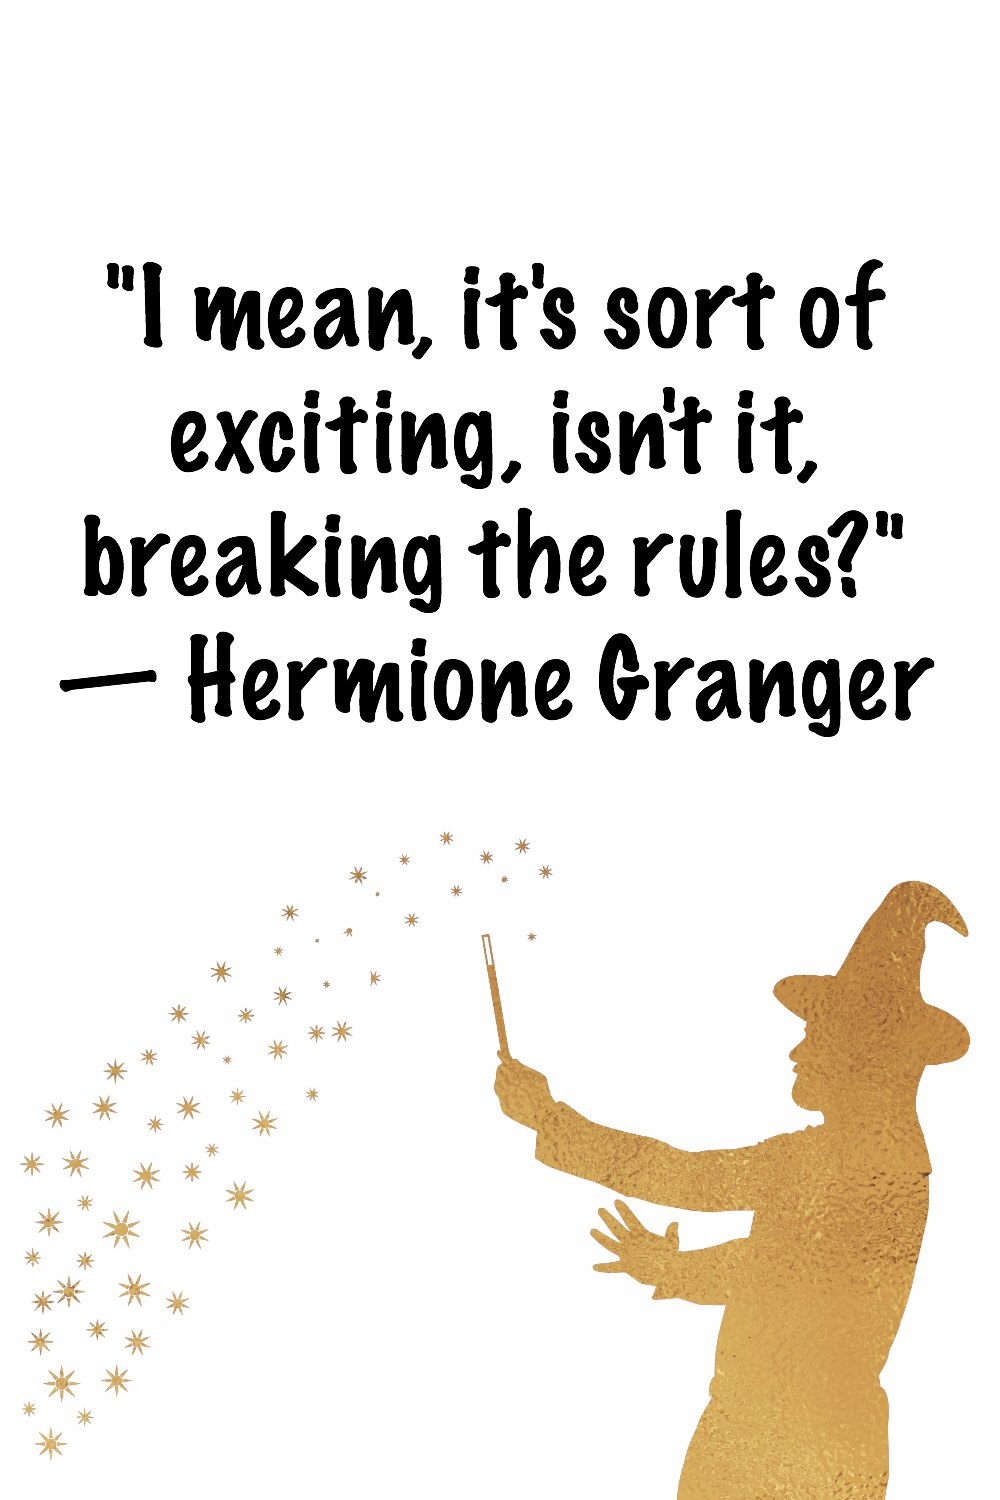 Hermione Granger quote